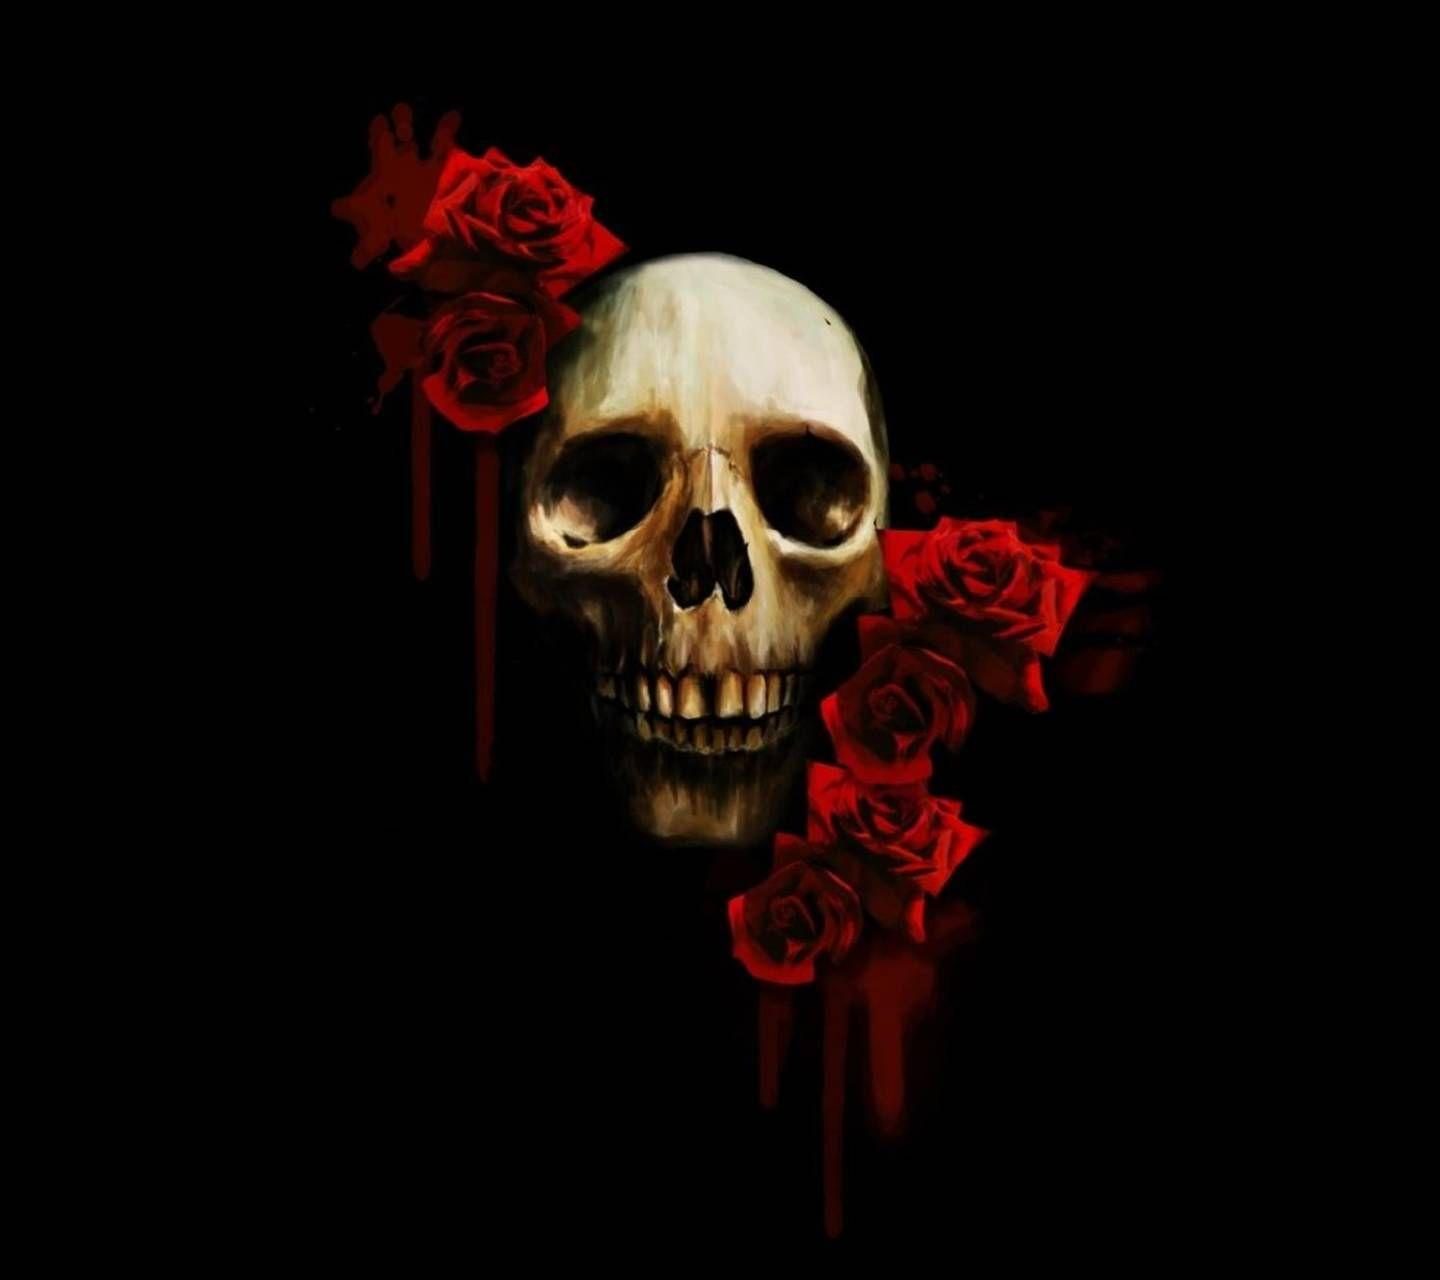 Skull And Roses Wallpapers Wallpaper Cave